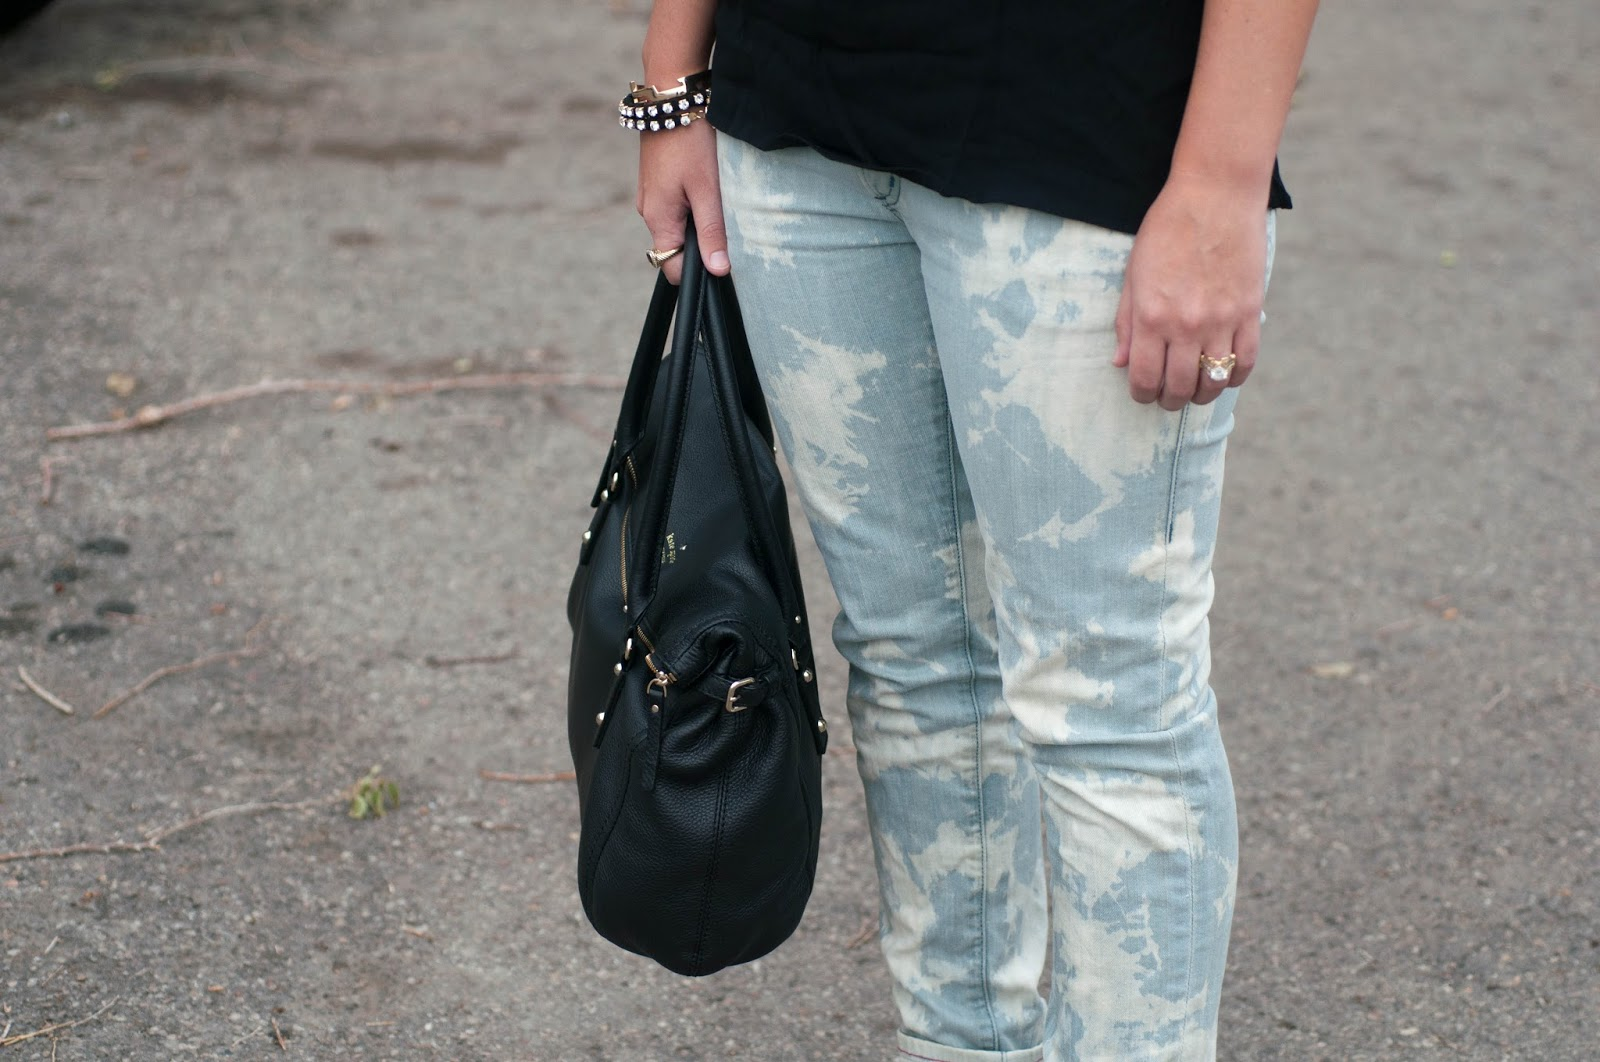 acid wash pants, bleached jeans, bleached pants, kate spade handbag, kate spade cobble hill leslie handbag, kill city